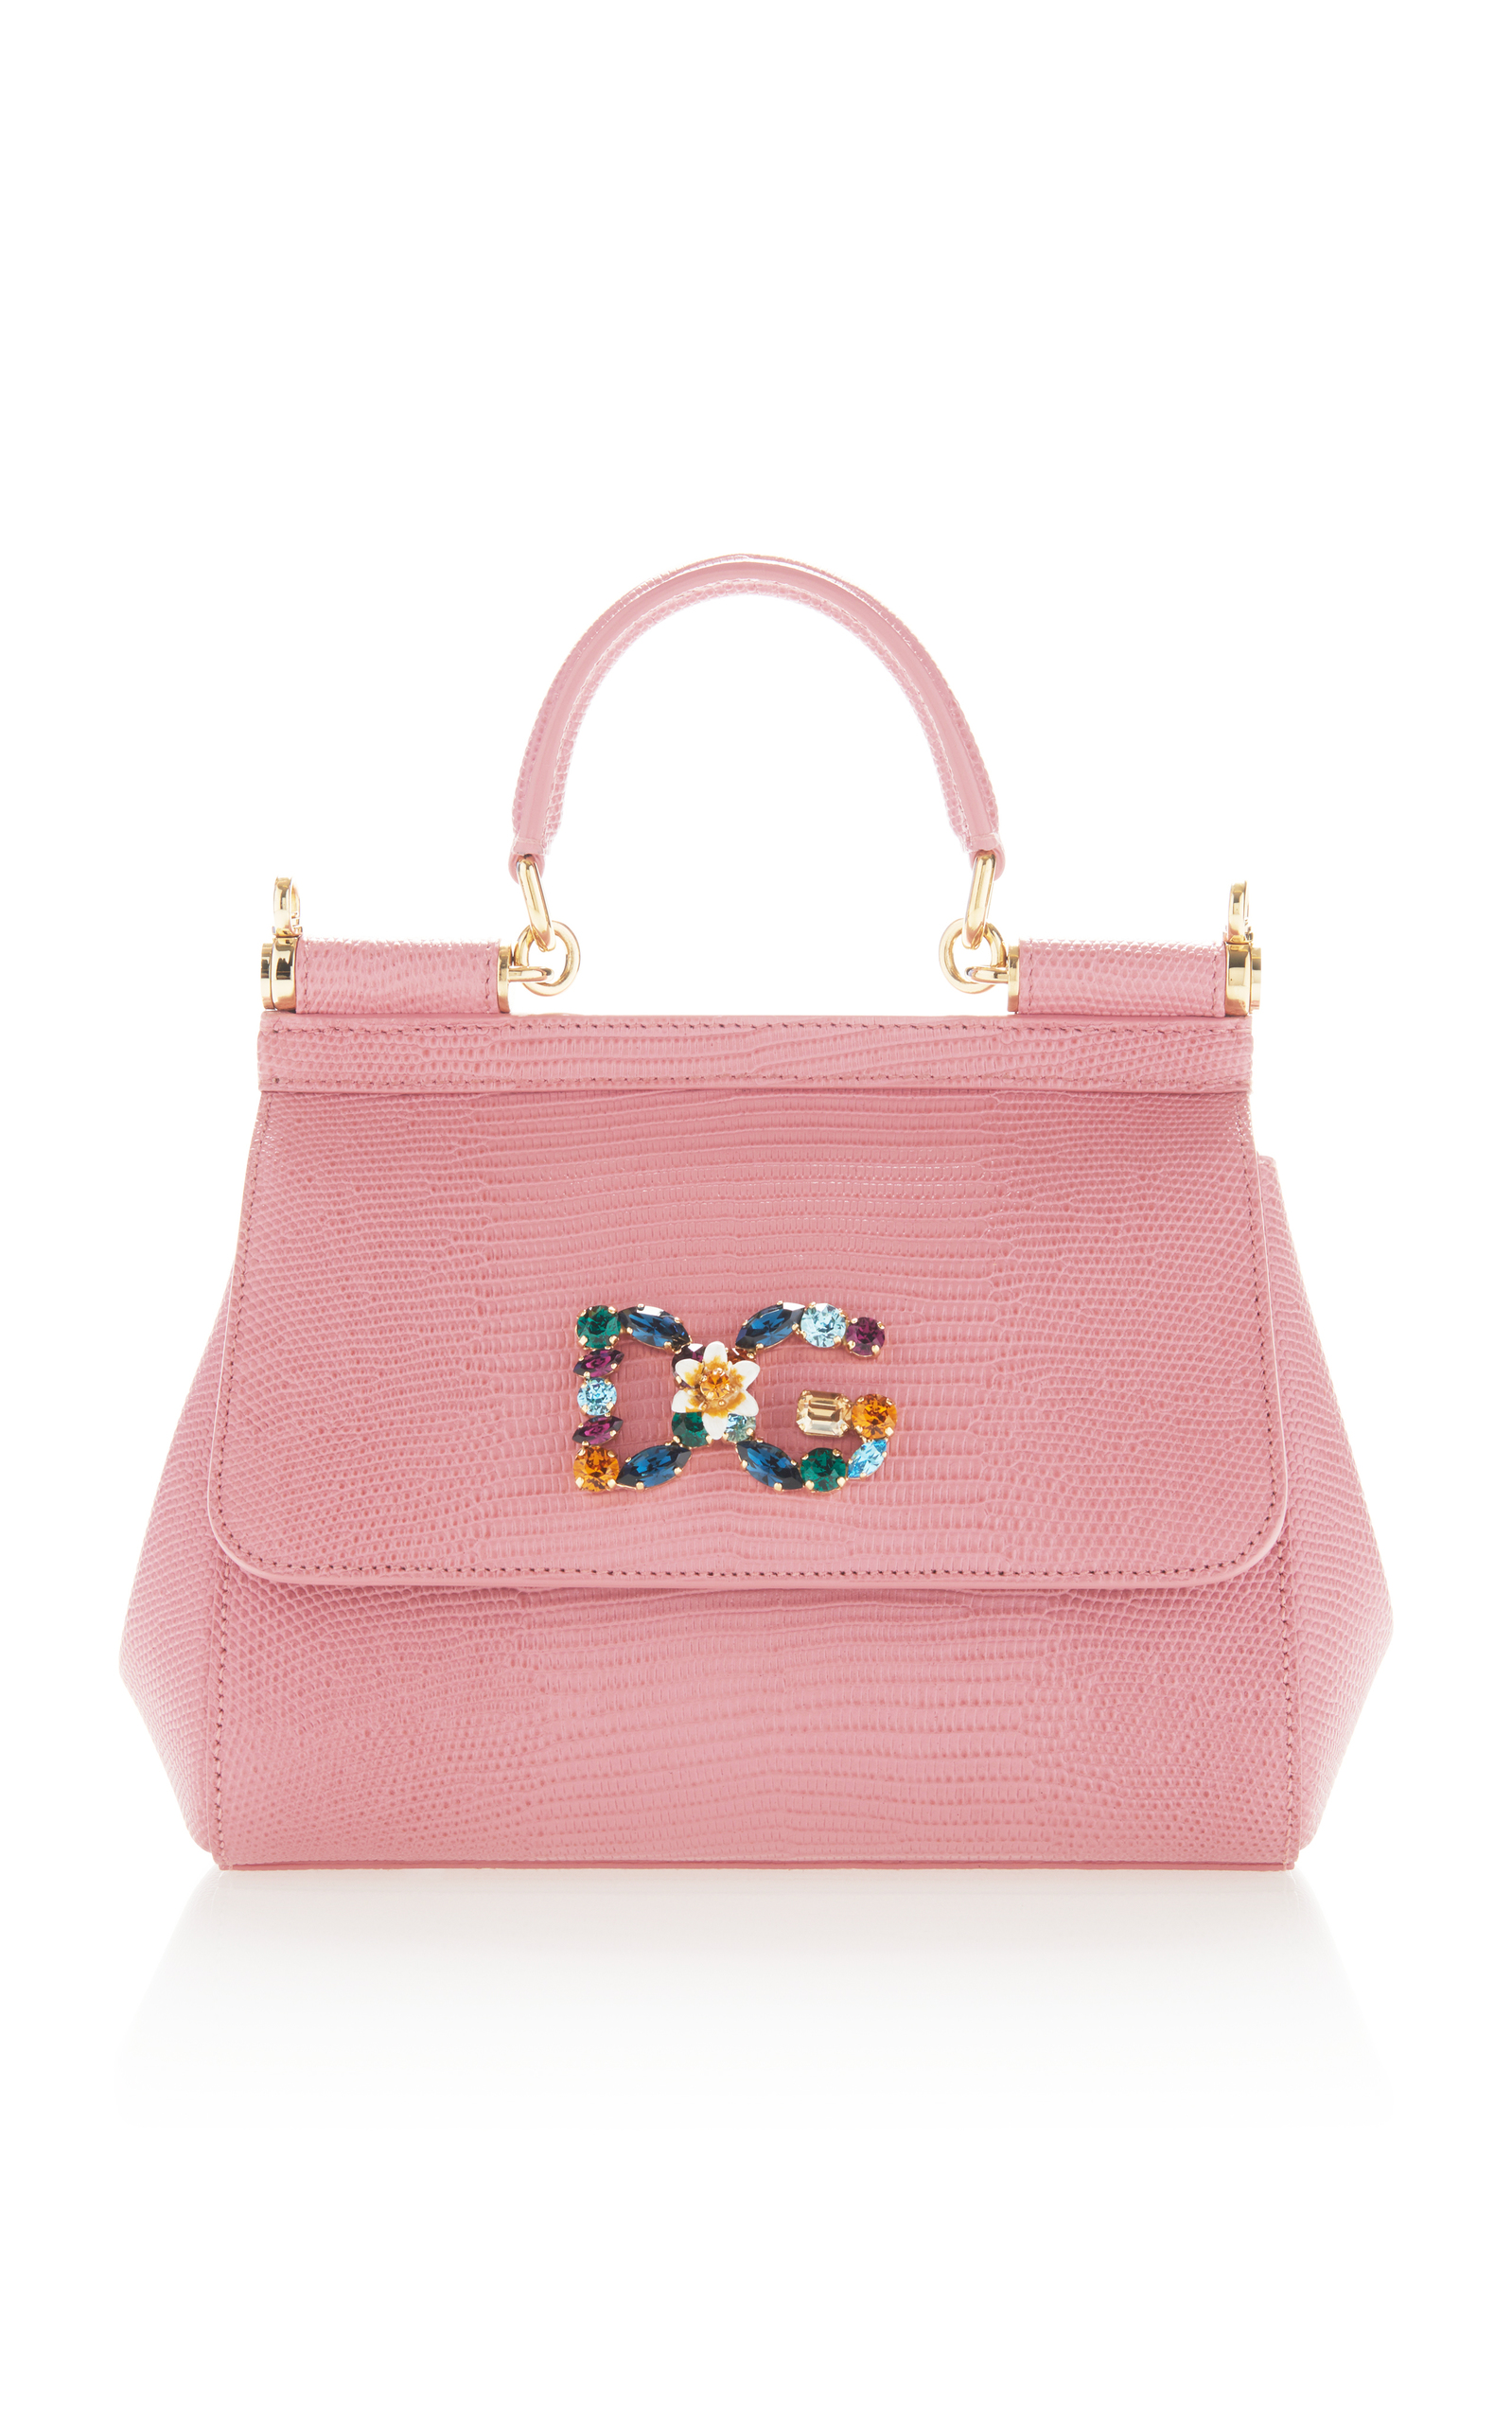 Dolce   Gabbana Small Sicily Handbag In Iguana Print Calfskin With Dg Logo  Crystals In Pink 0a838340e1